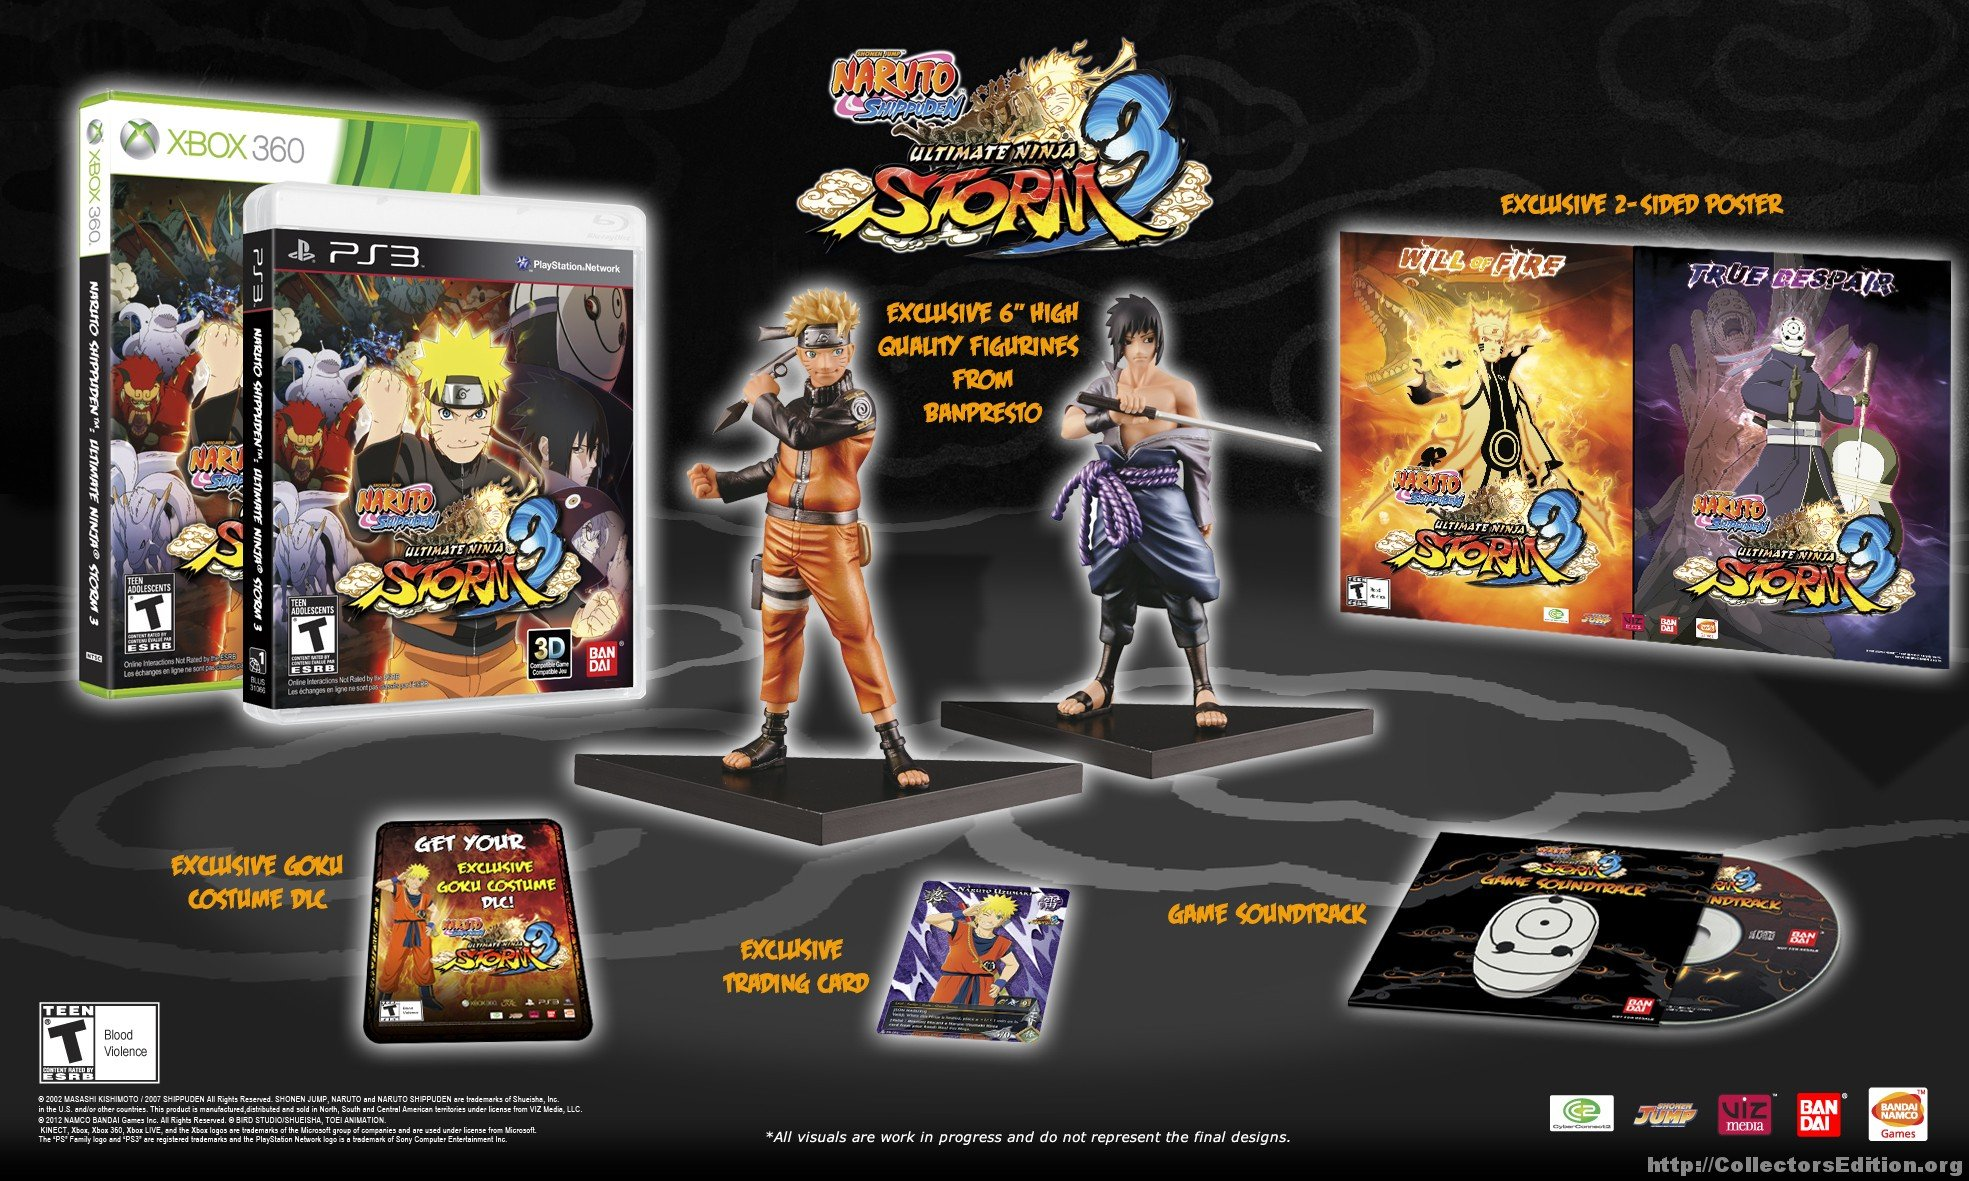 Amazon.com: Naruto Ultimate Ninja Storm 3 Collectors ...